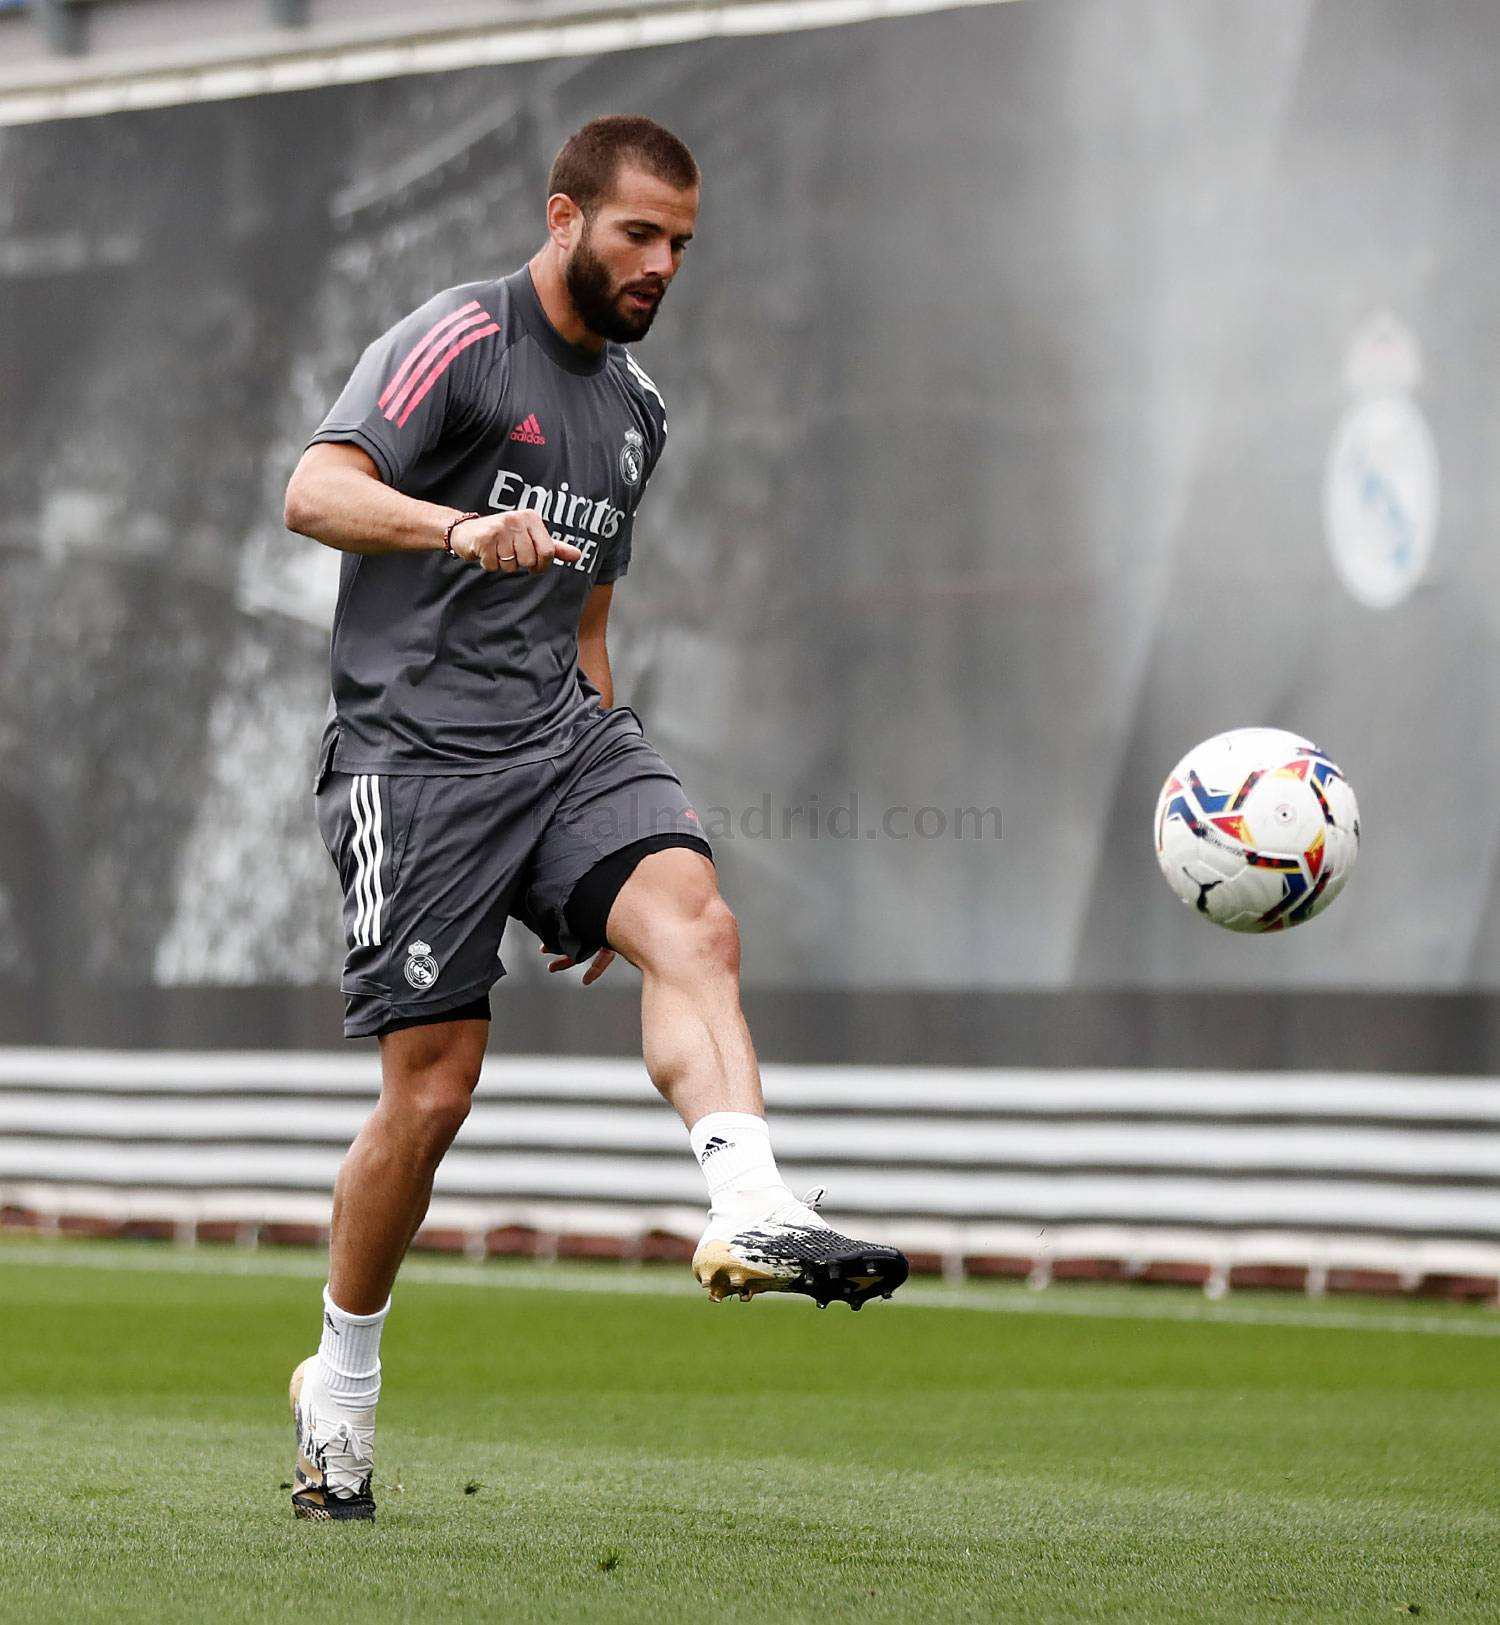 Real Madrid - Entrenamiento del Real Madrid  - 01-09-2020